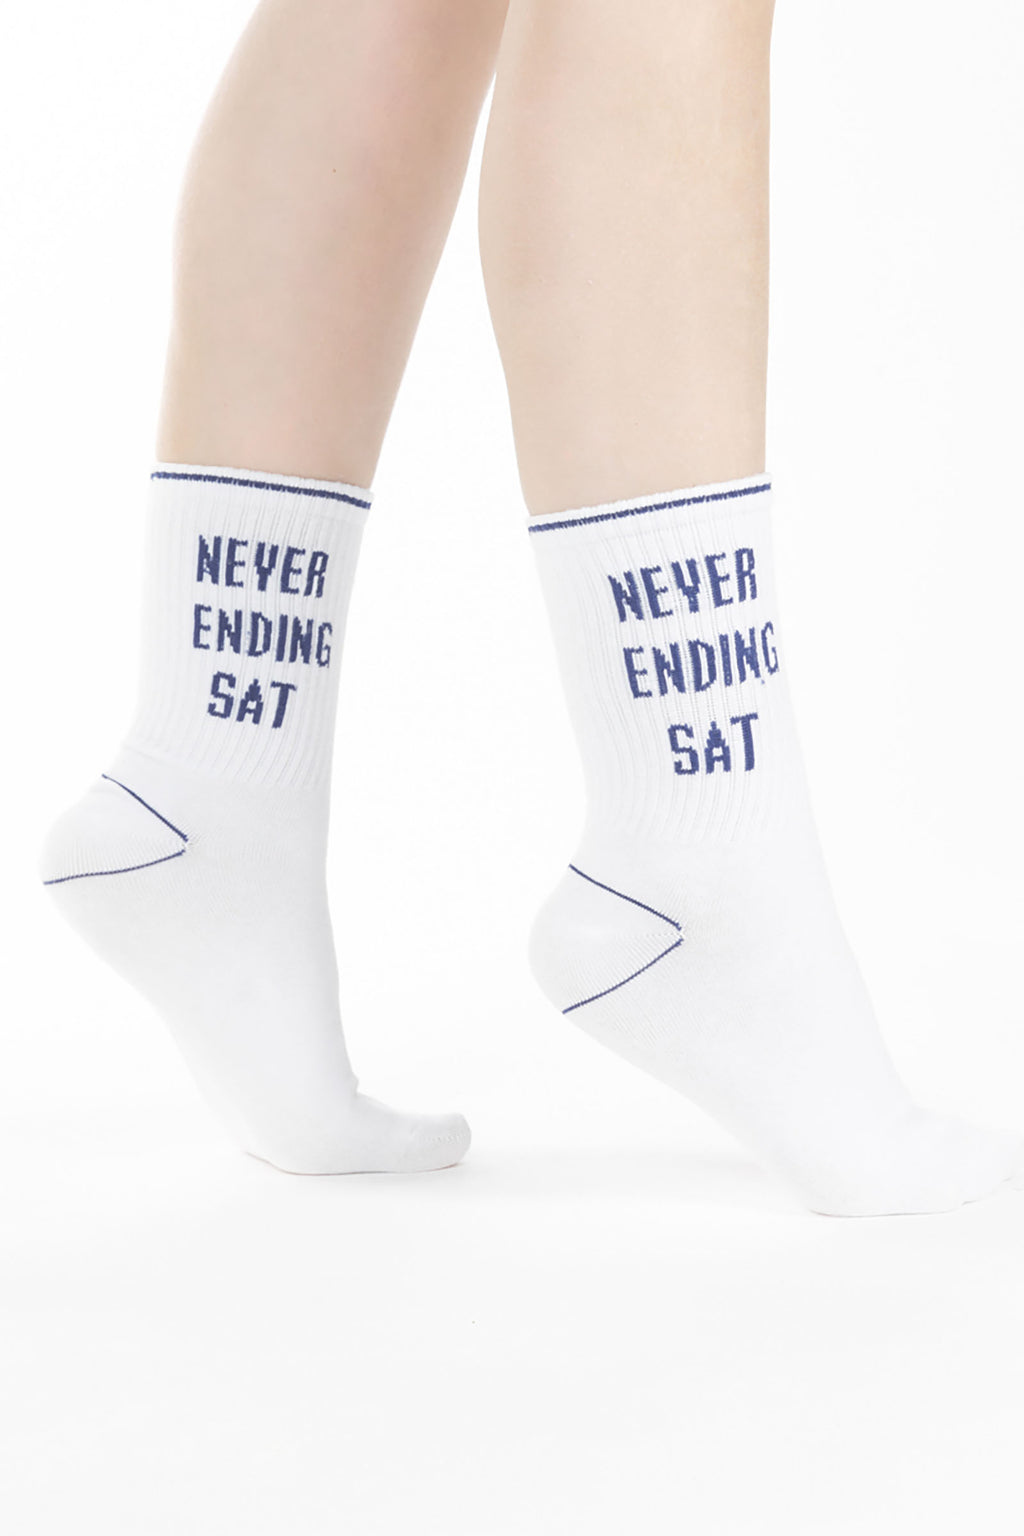 Never Ending Saturday Socks